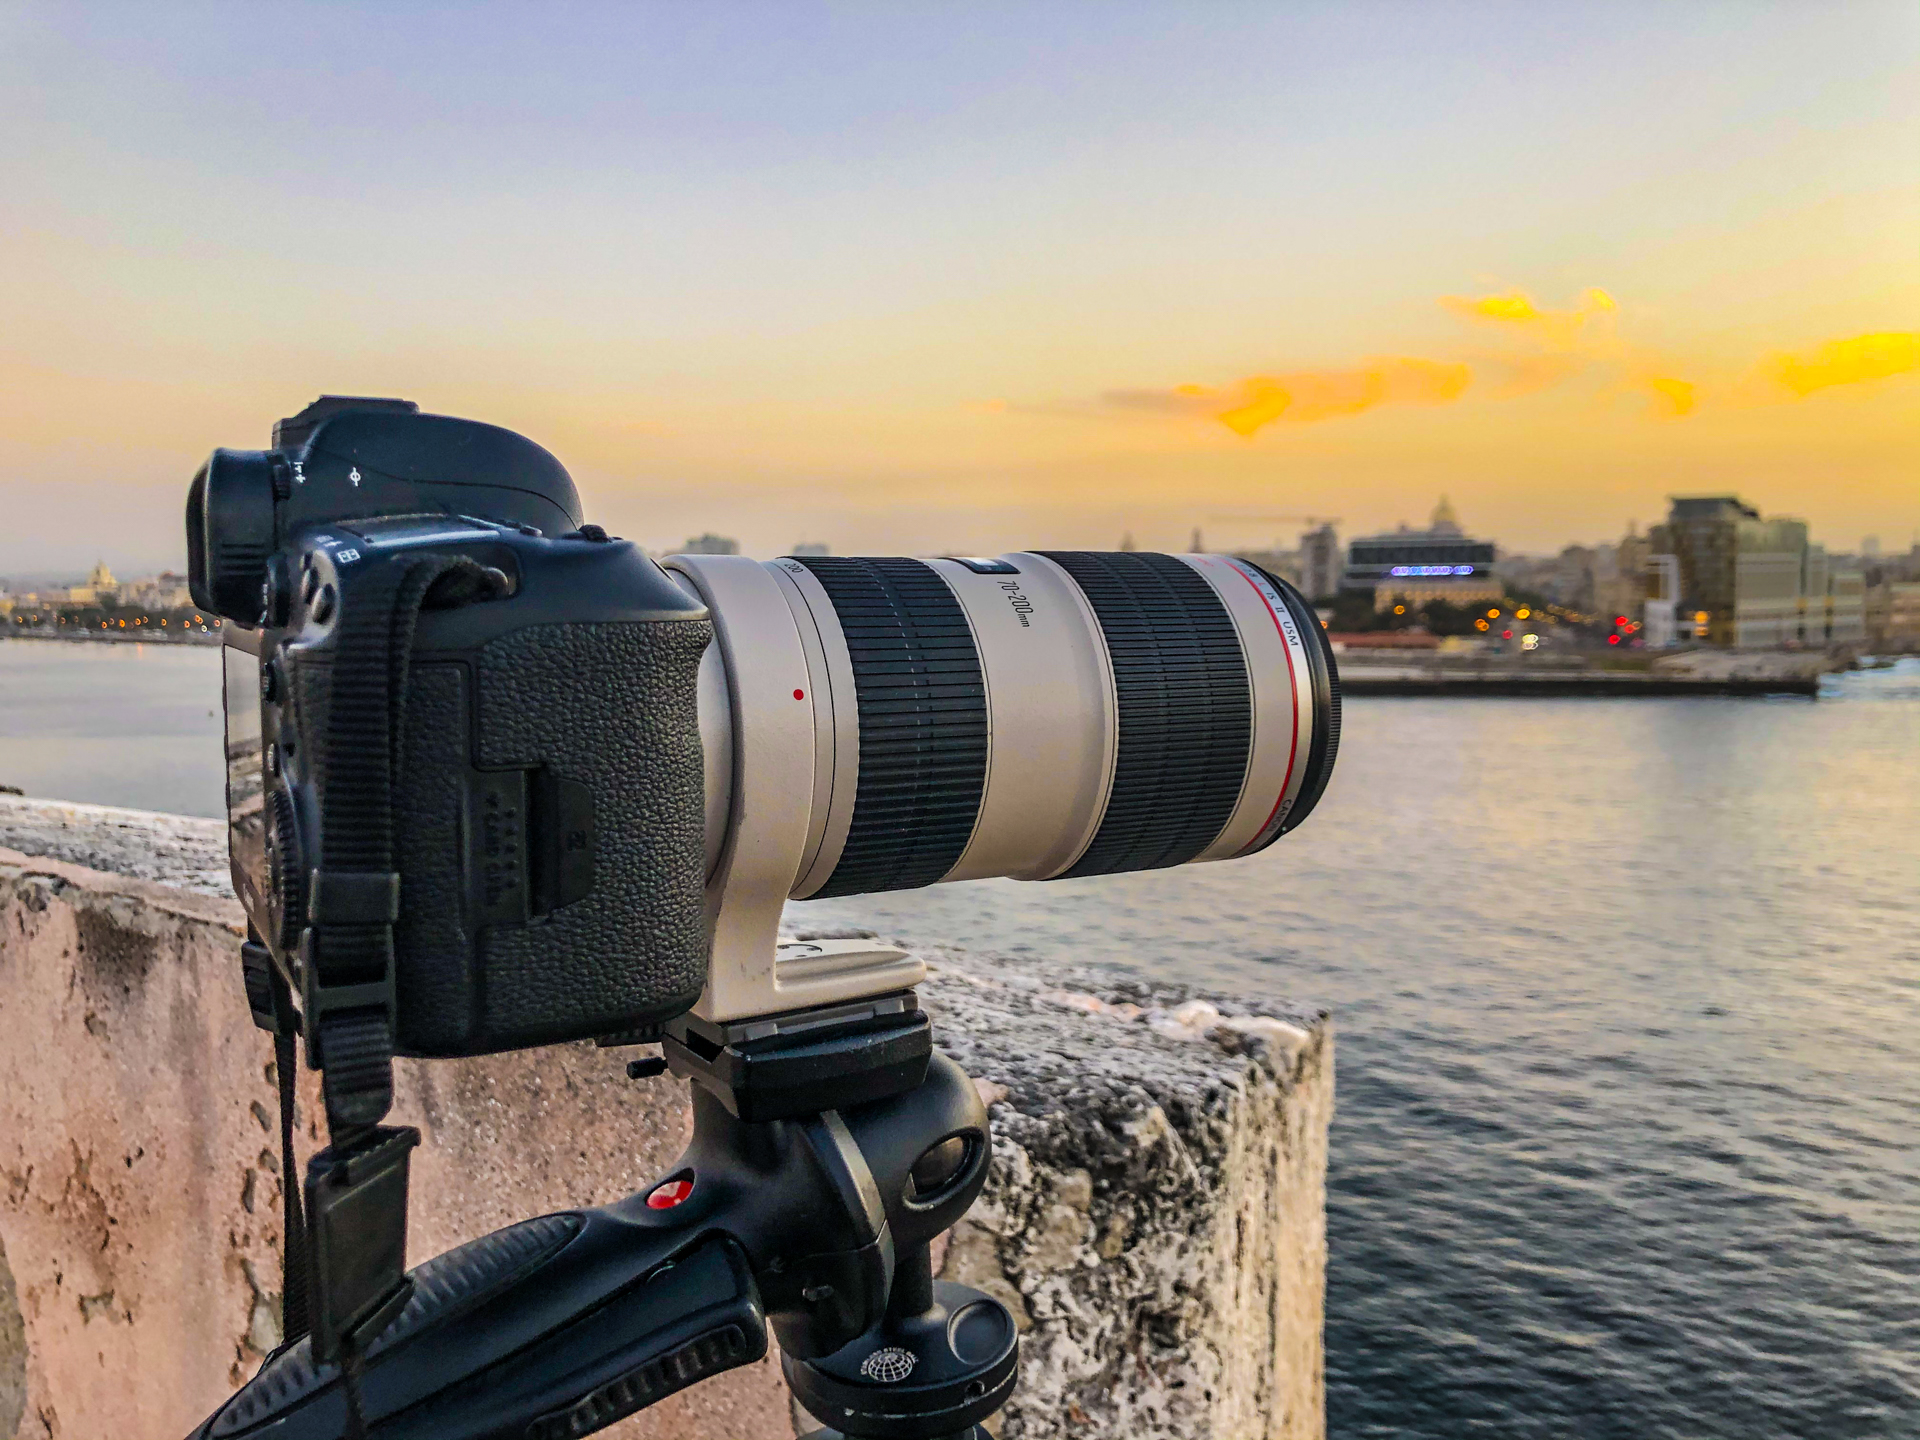 DSLR with a zoom lens overlooking a city